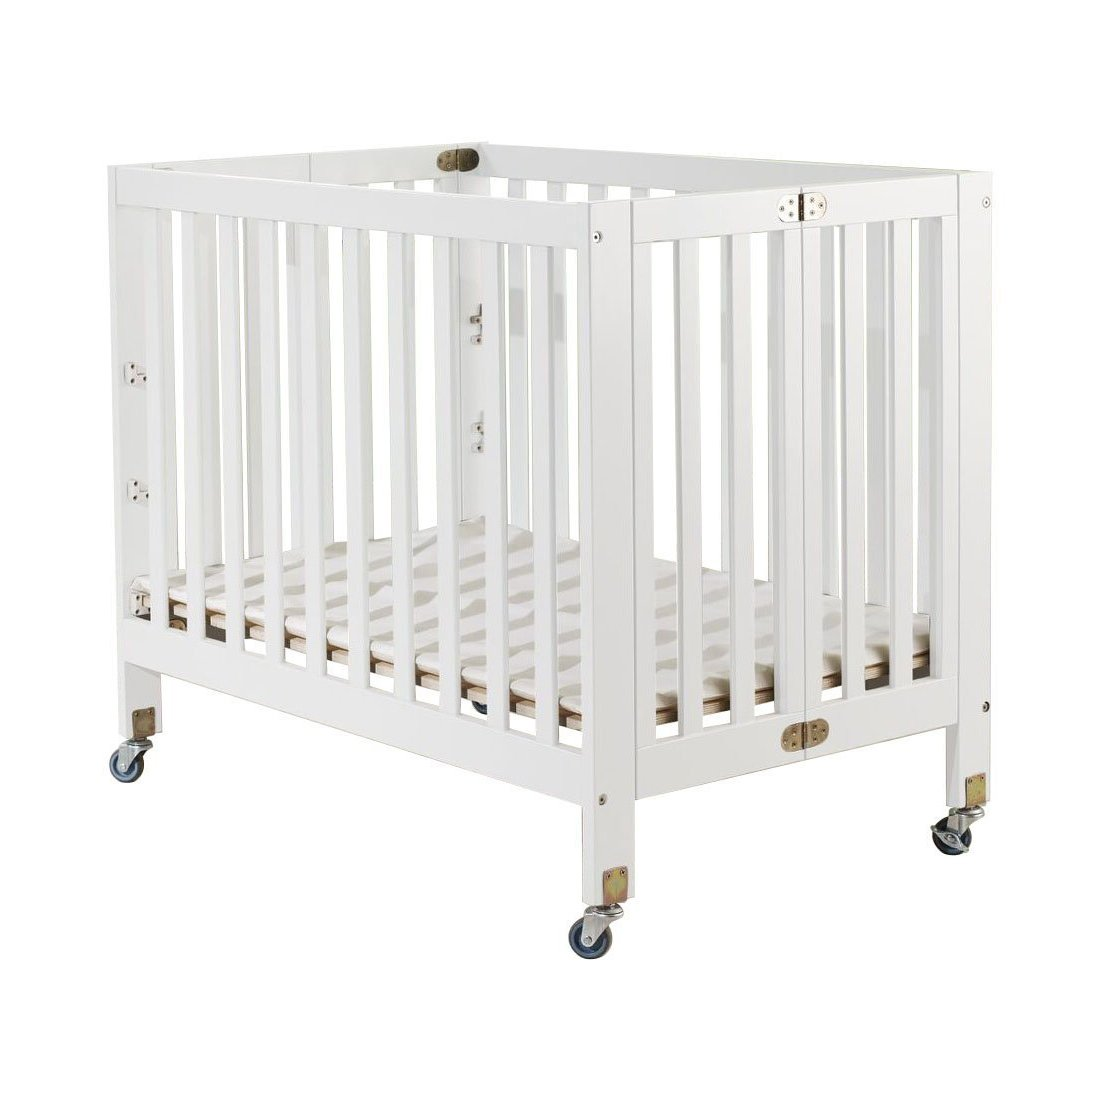 Orbelle Trading Roxy Three Portable Crib, White by Orbelle Trading